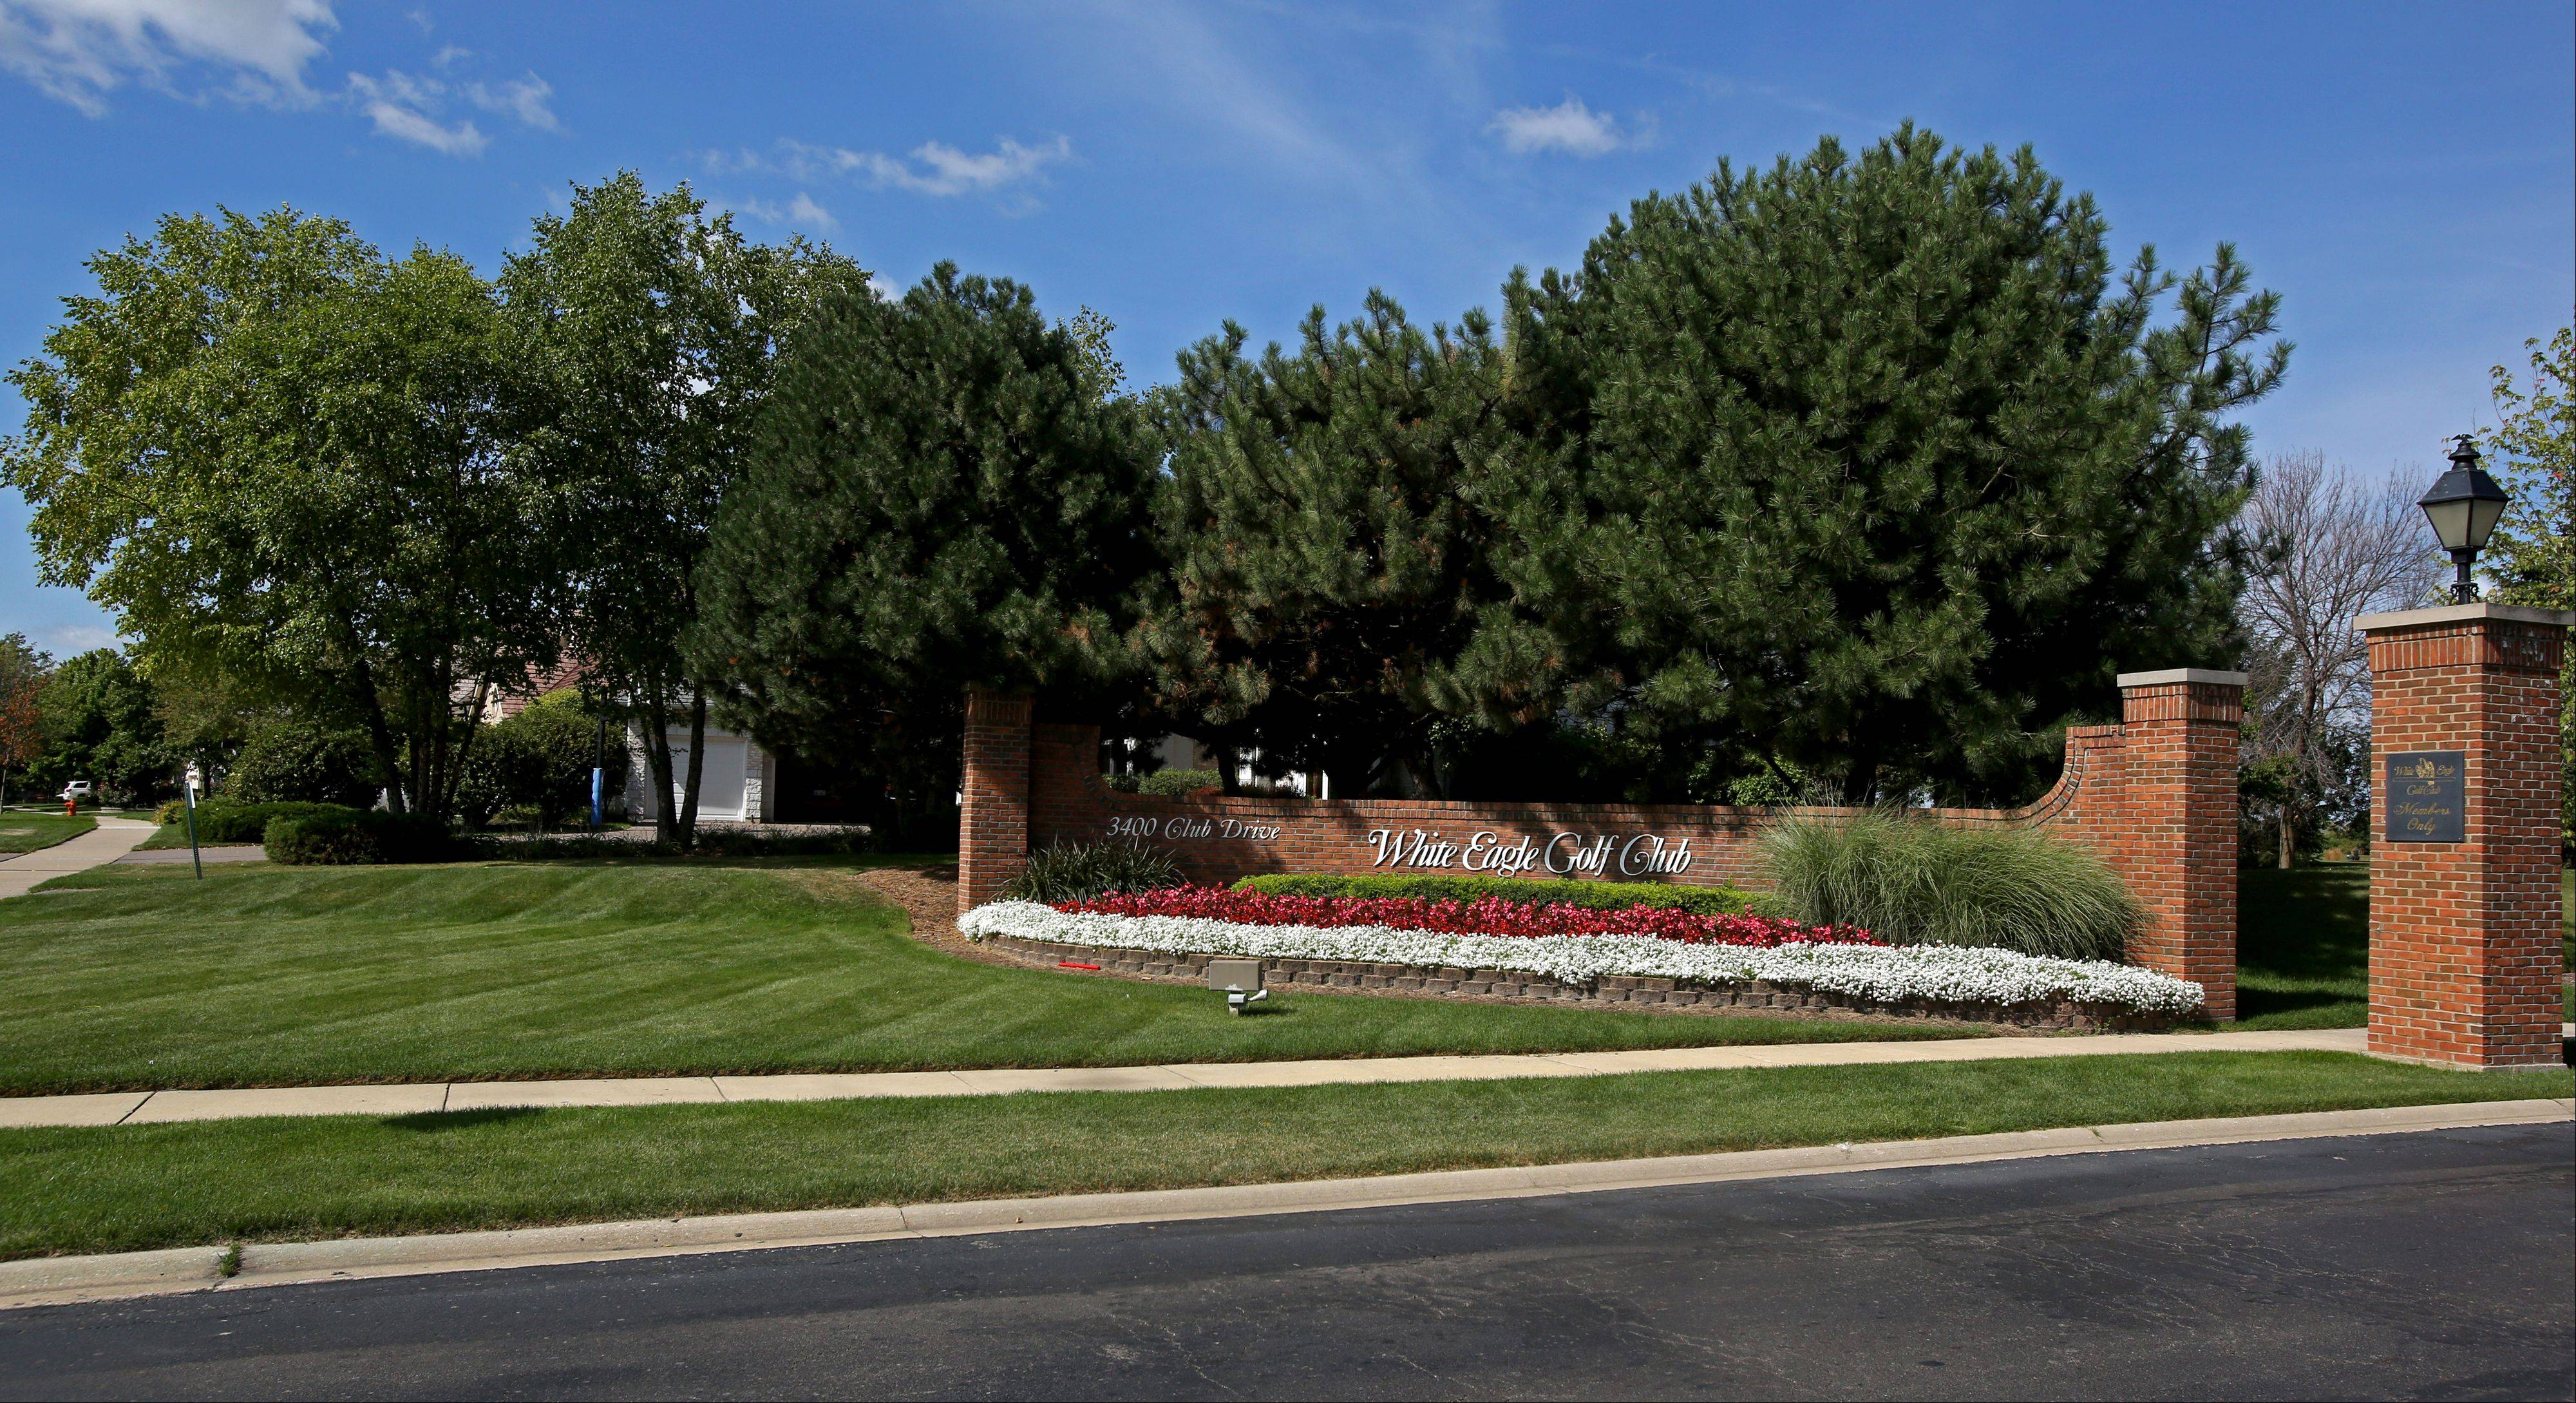 The White Eagle Golf Club in Naperville features an Arnold Palmer Signature golf course.